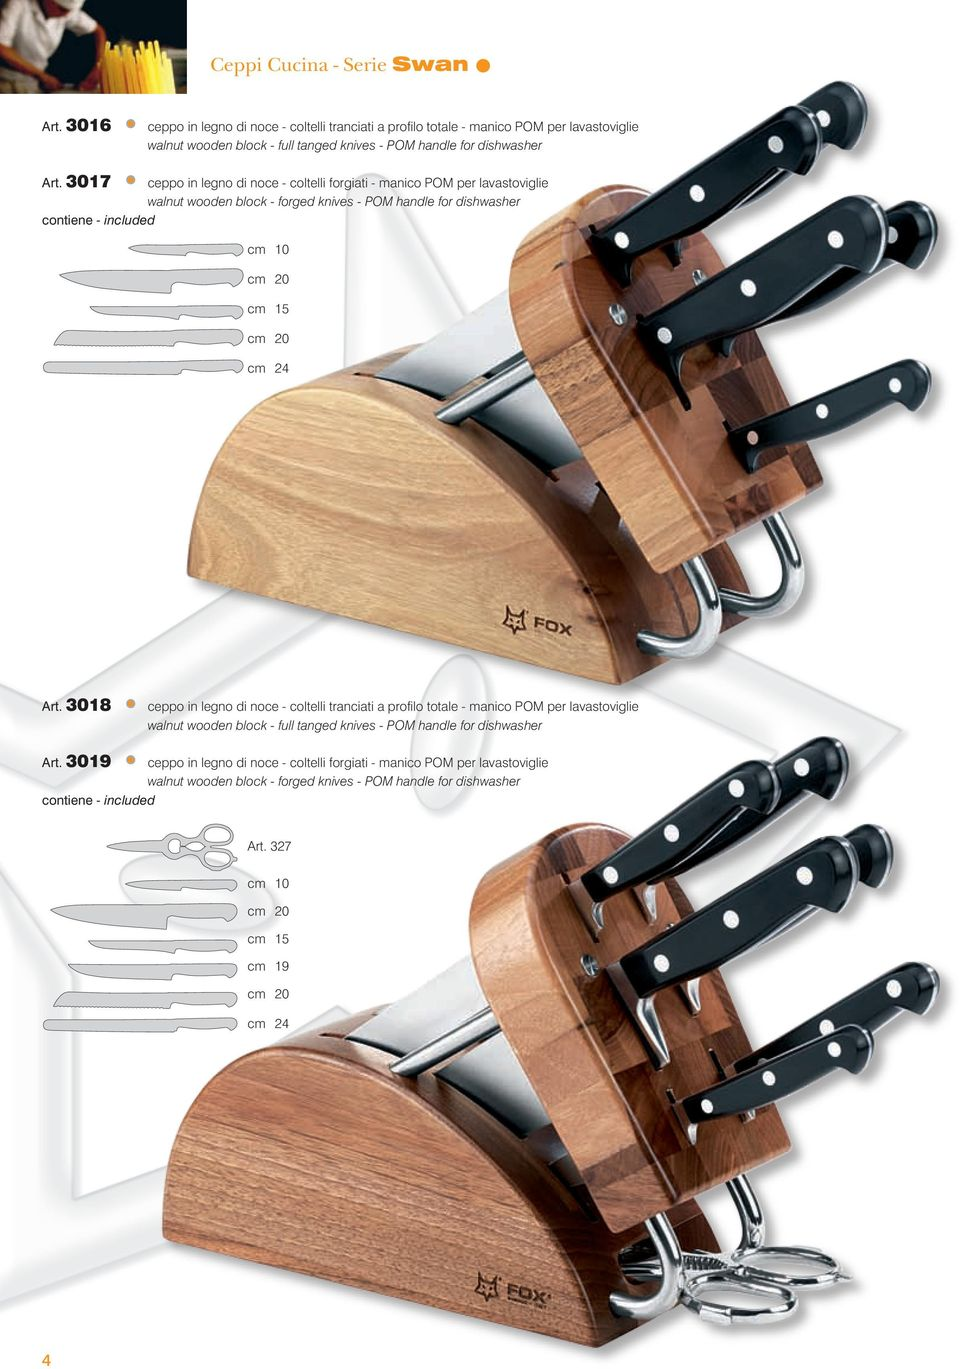 3017 ceppo in legno di noce - coltelli forgiati - manico POM per lavastoviglie walnut wooden block - forged knives - POM handle for dishwasher contiene - included cm 10 cm 20 cm 15 cm 20 cm 24